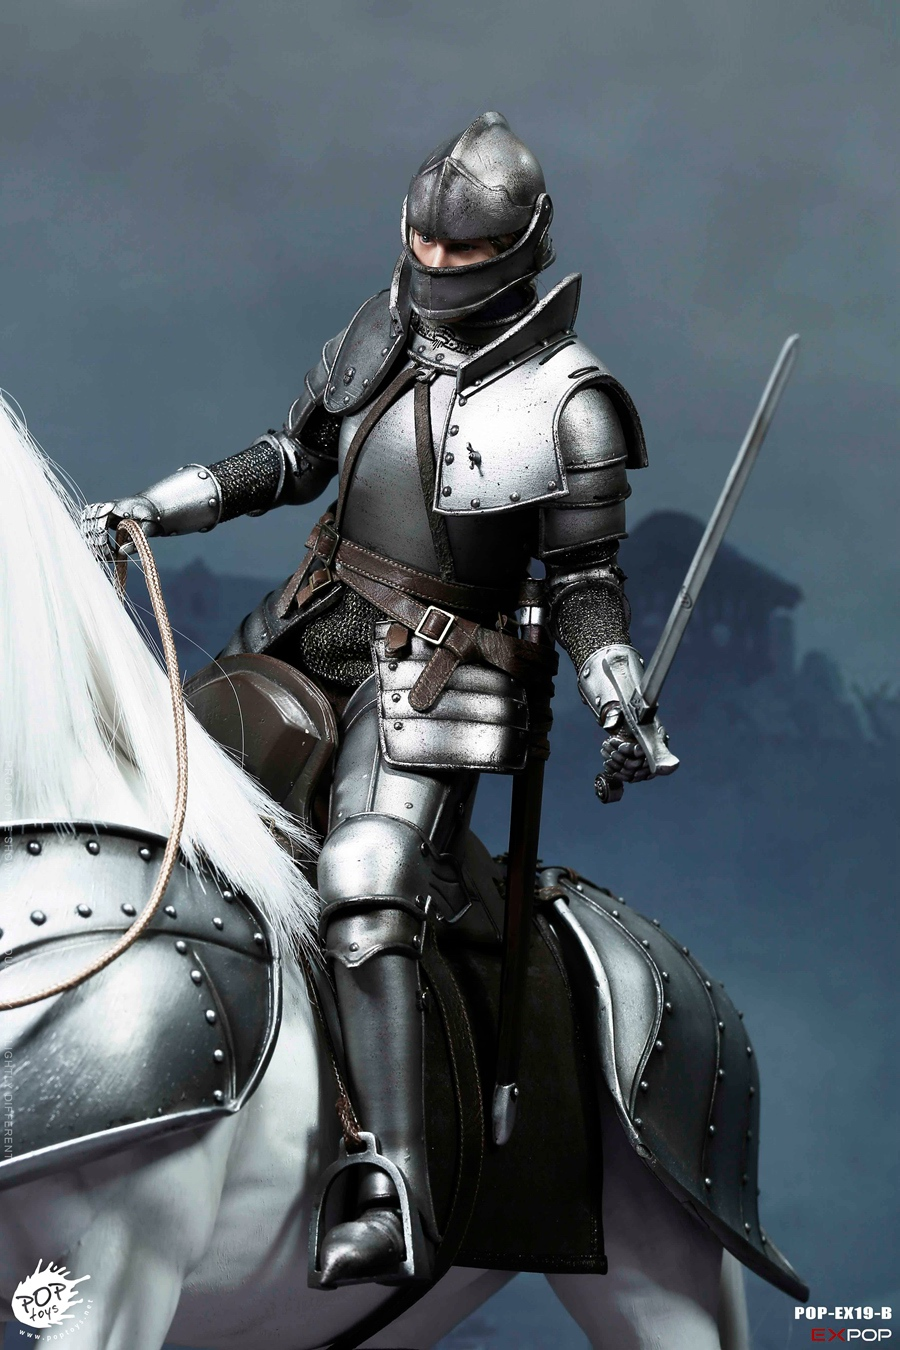 NEW PRODUCT: POPTOYS New Products: 1/6 St. Knights - Assault Edition & Triumph Edition & Iron Armor (POP-EX19 ABC) 16461410